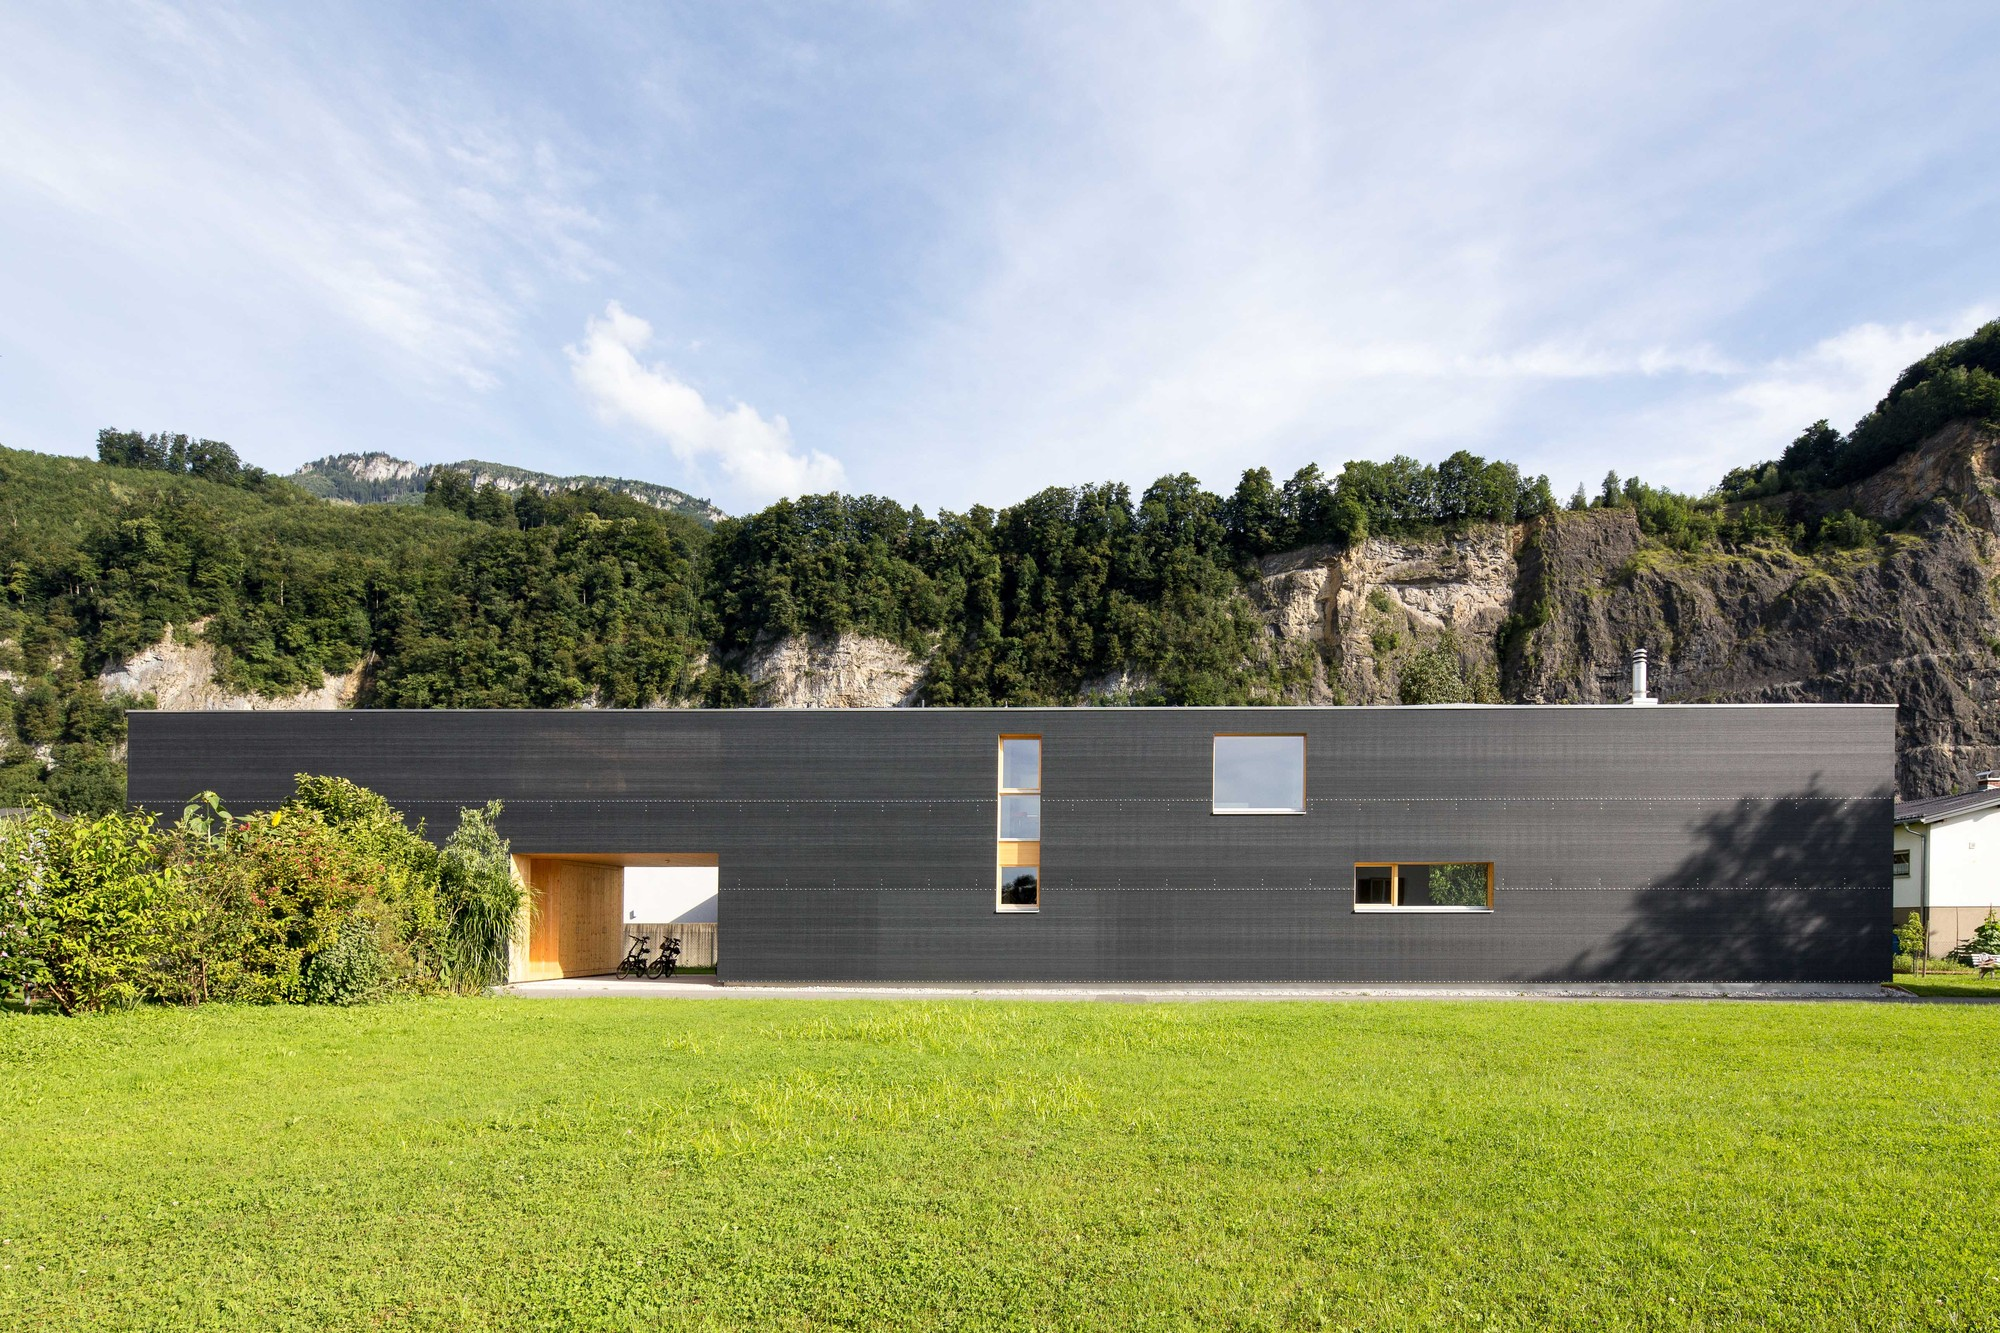 37m in Hohenems / Juri Troy Architects, Courtesy of Juri Troy